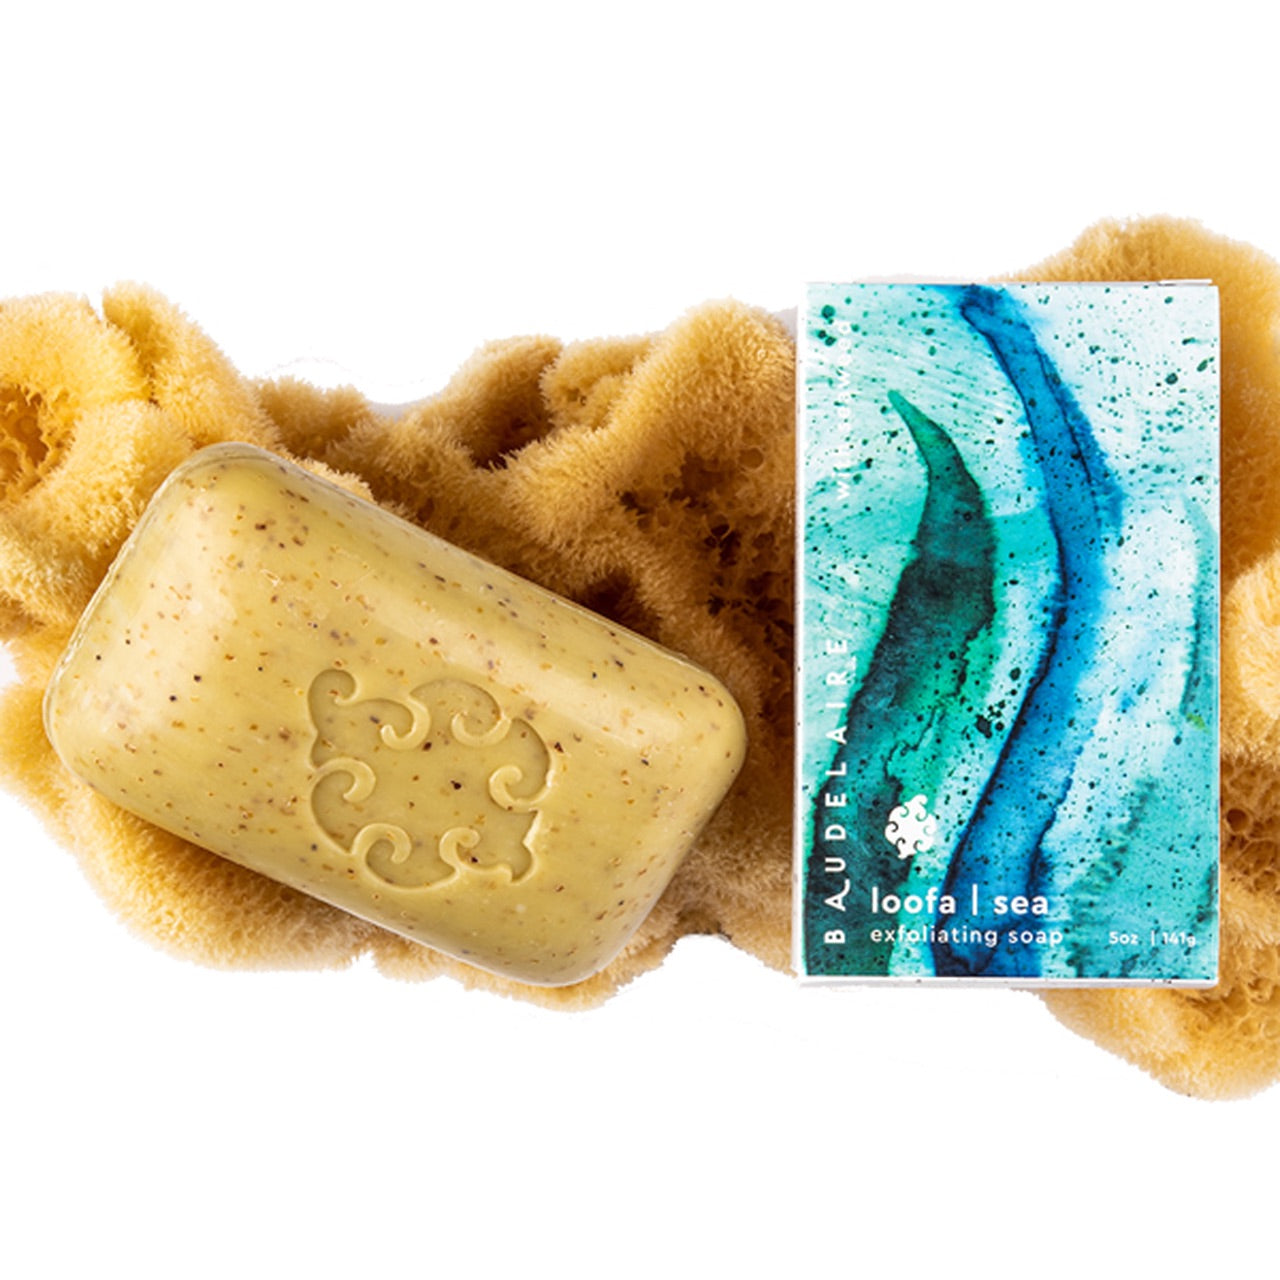 Sea Loofa Soap